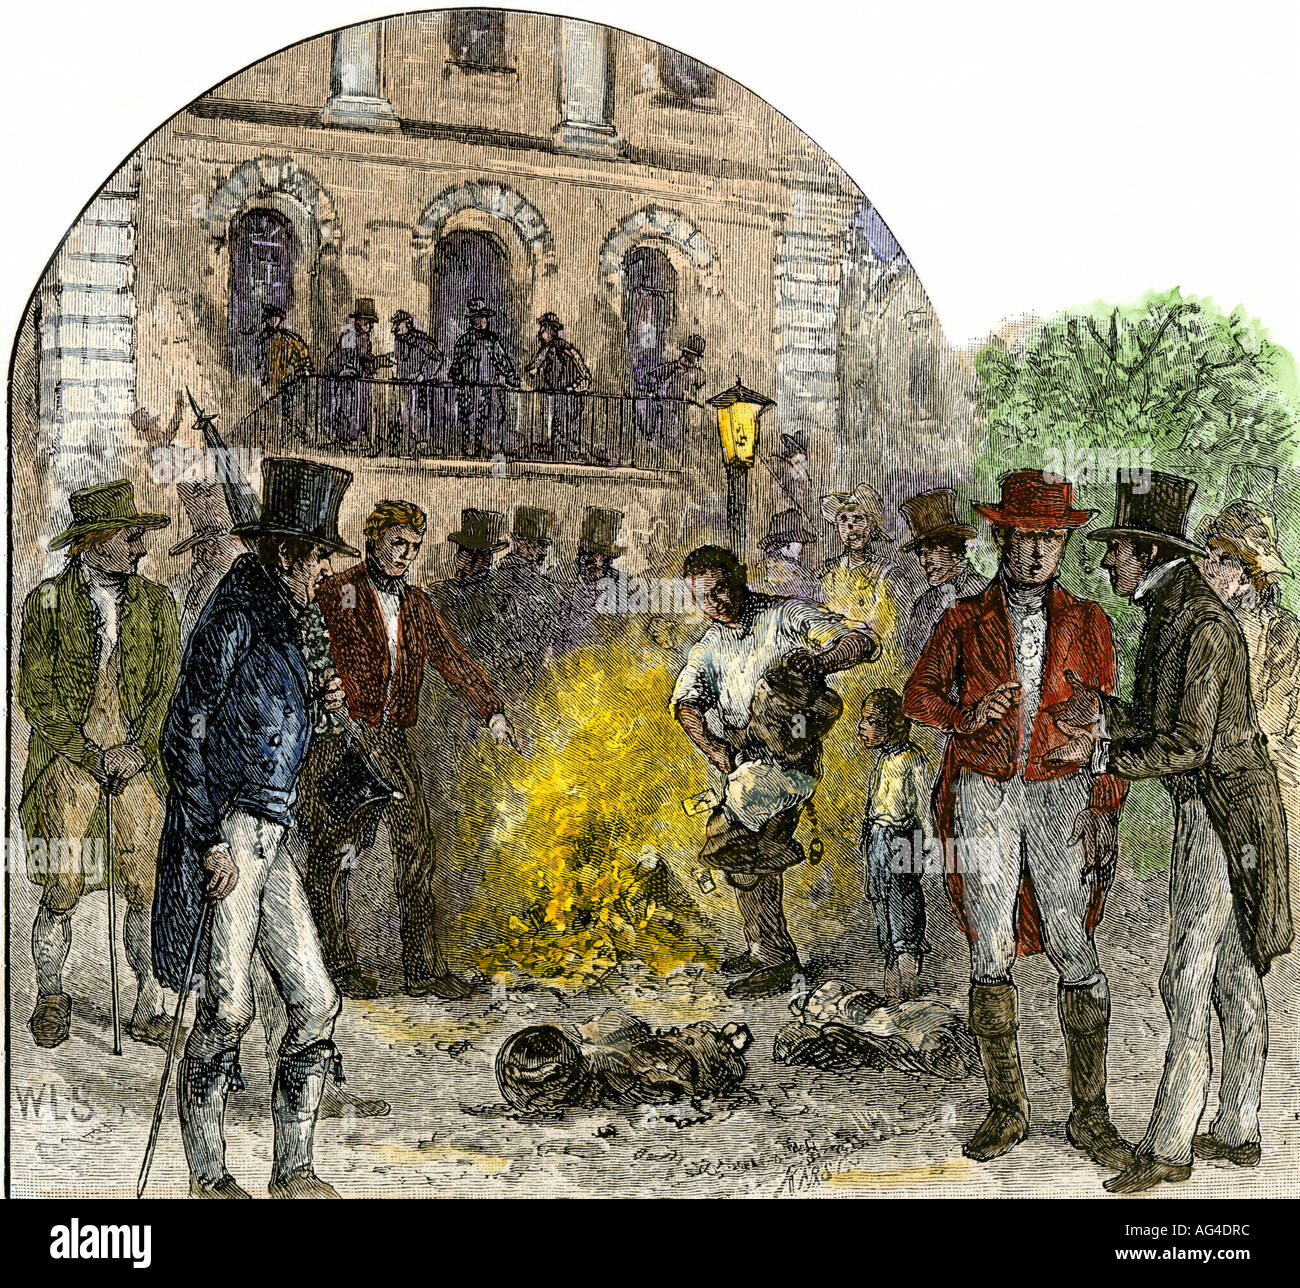 Slavery proponents burning antislavery documents in Charleston South Carolina in the 1830s. Hand-colored woodcut - Stock Image